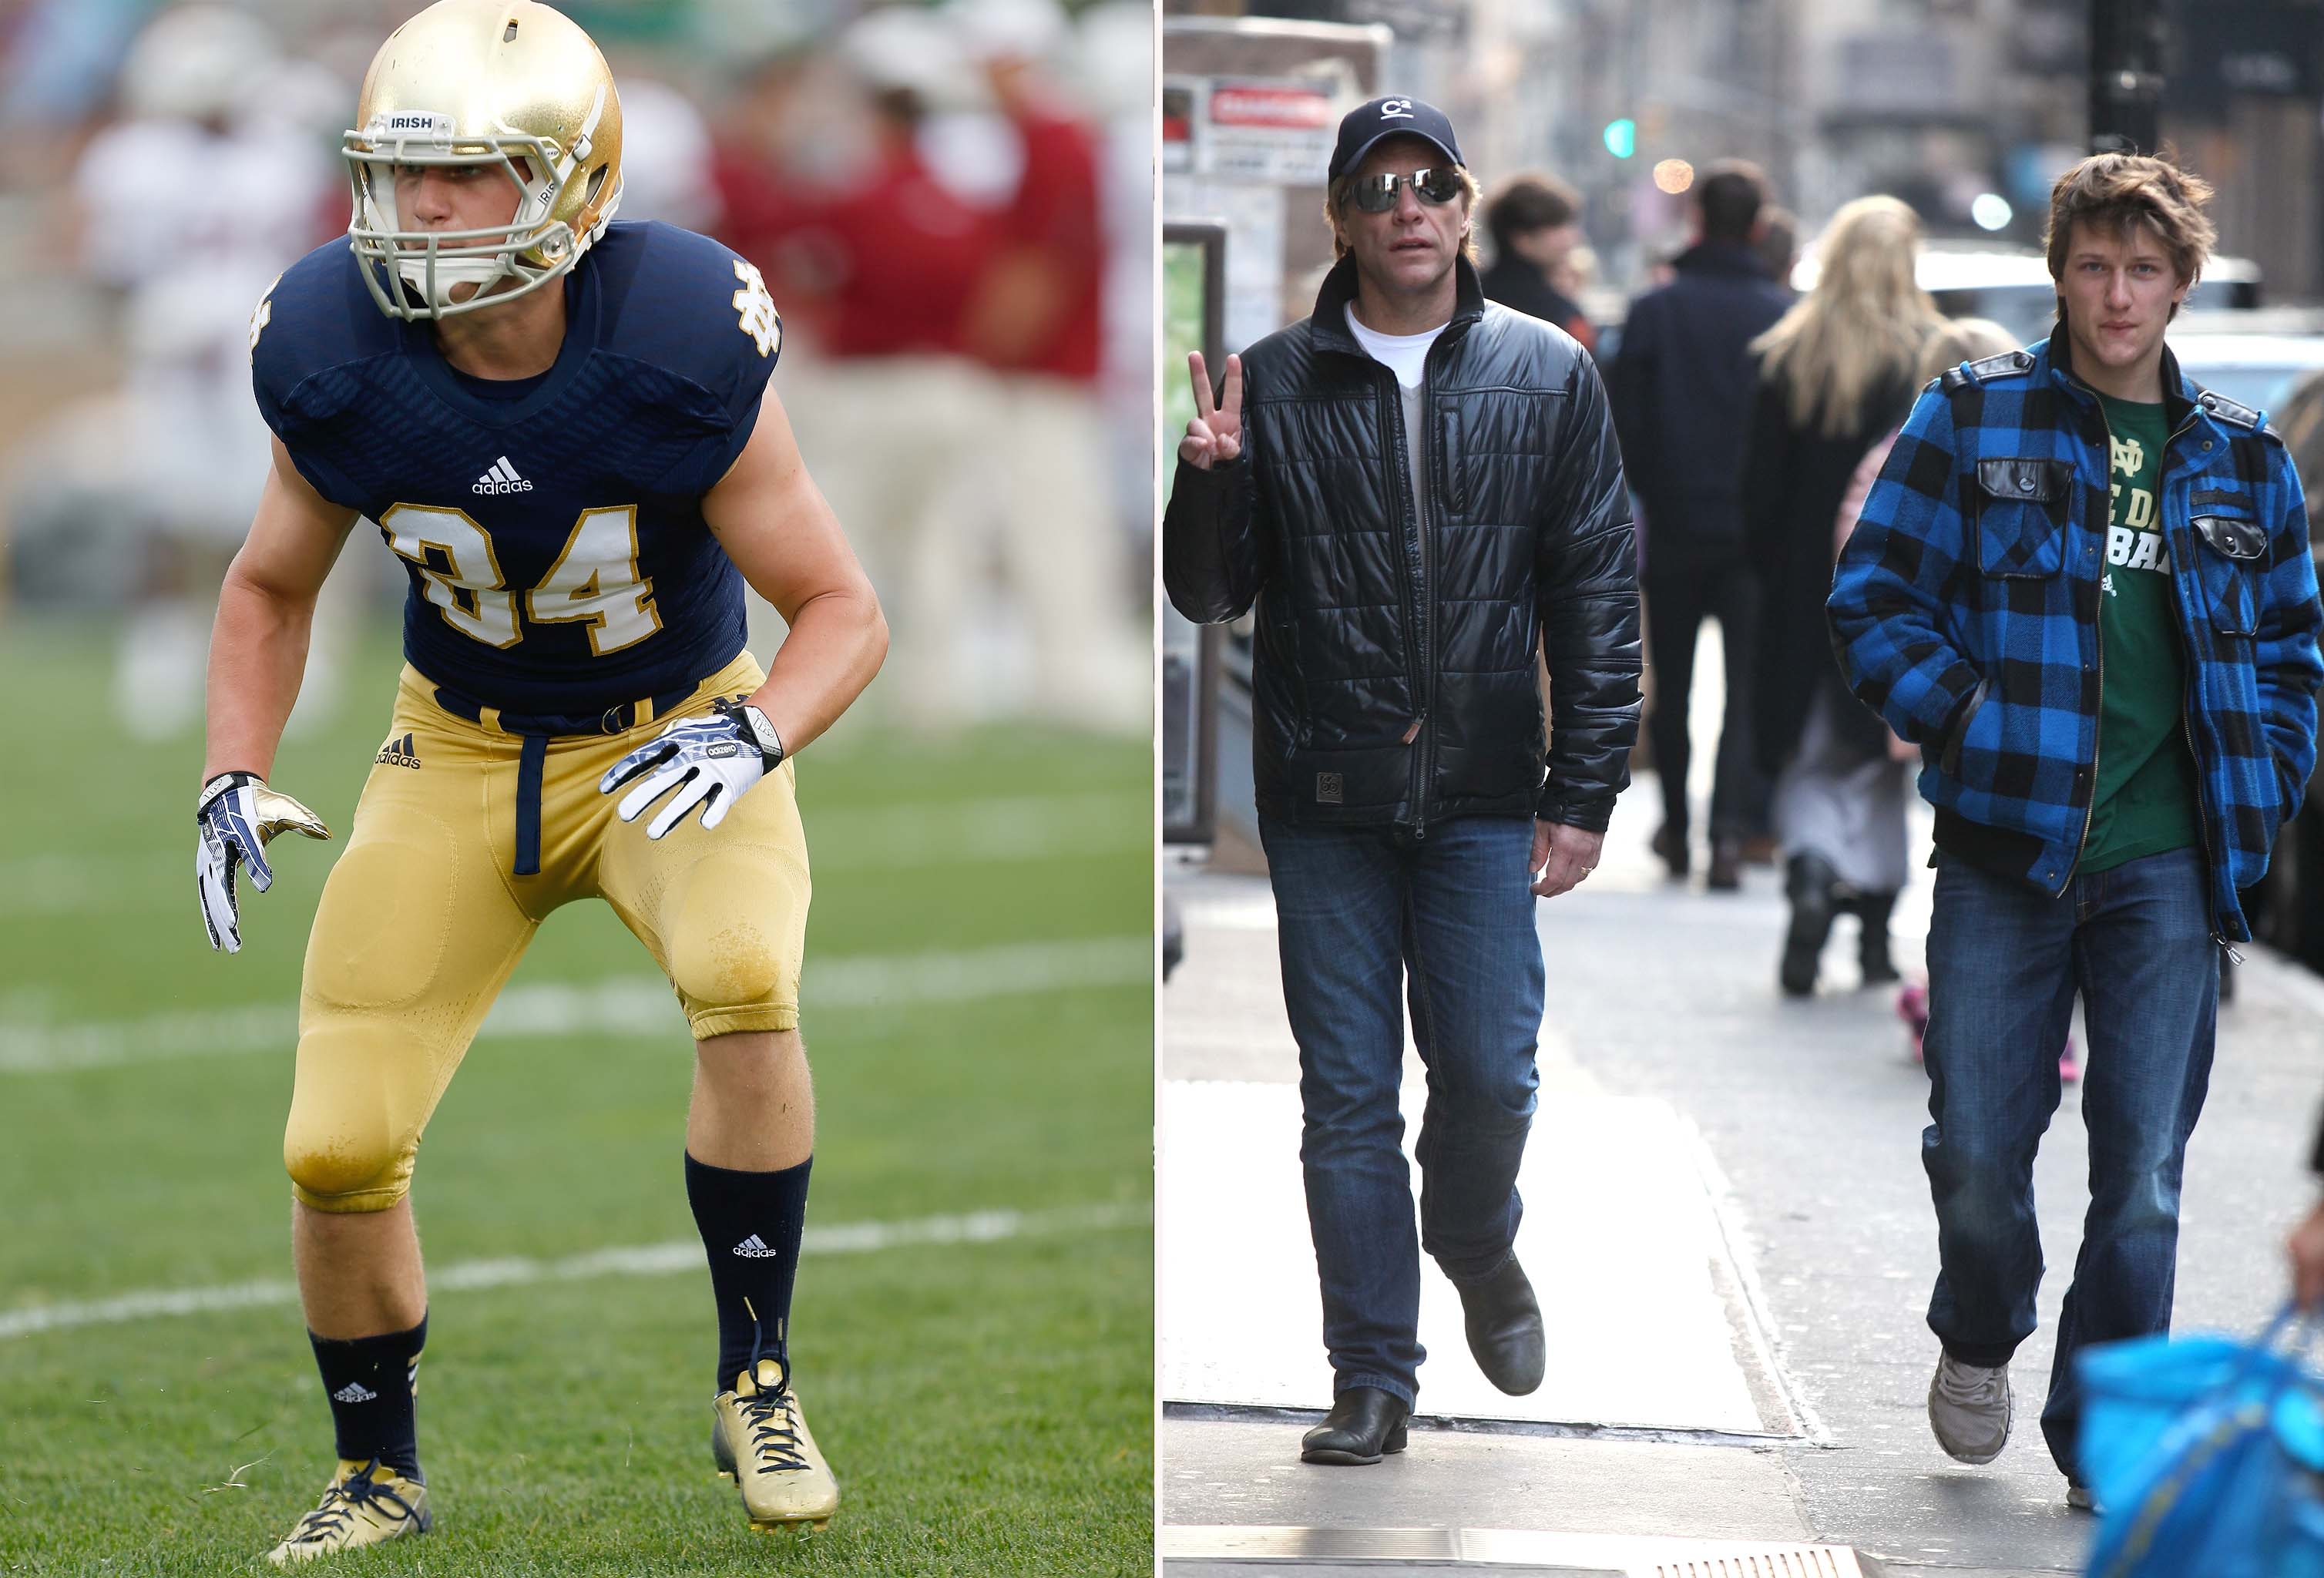 Jesse Bongiovi and his biggest fan, his dad Jon Bon Jovi. (AP/Startraksphoto.com)